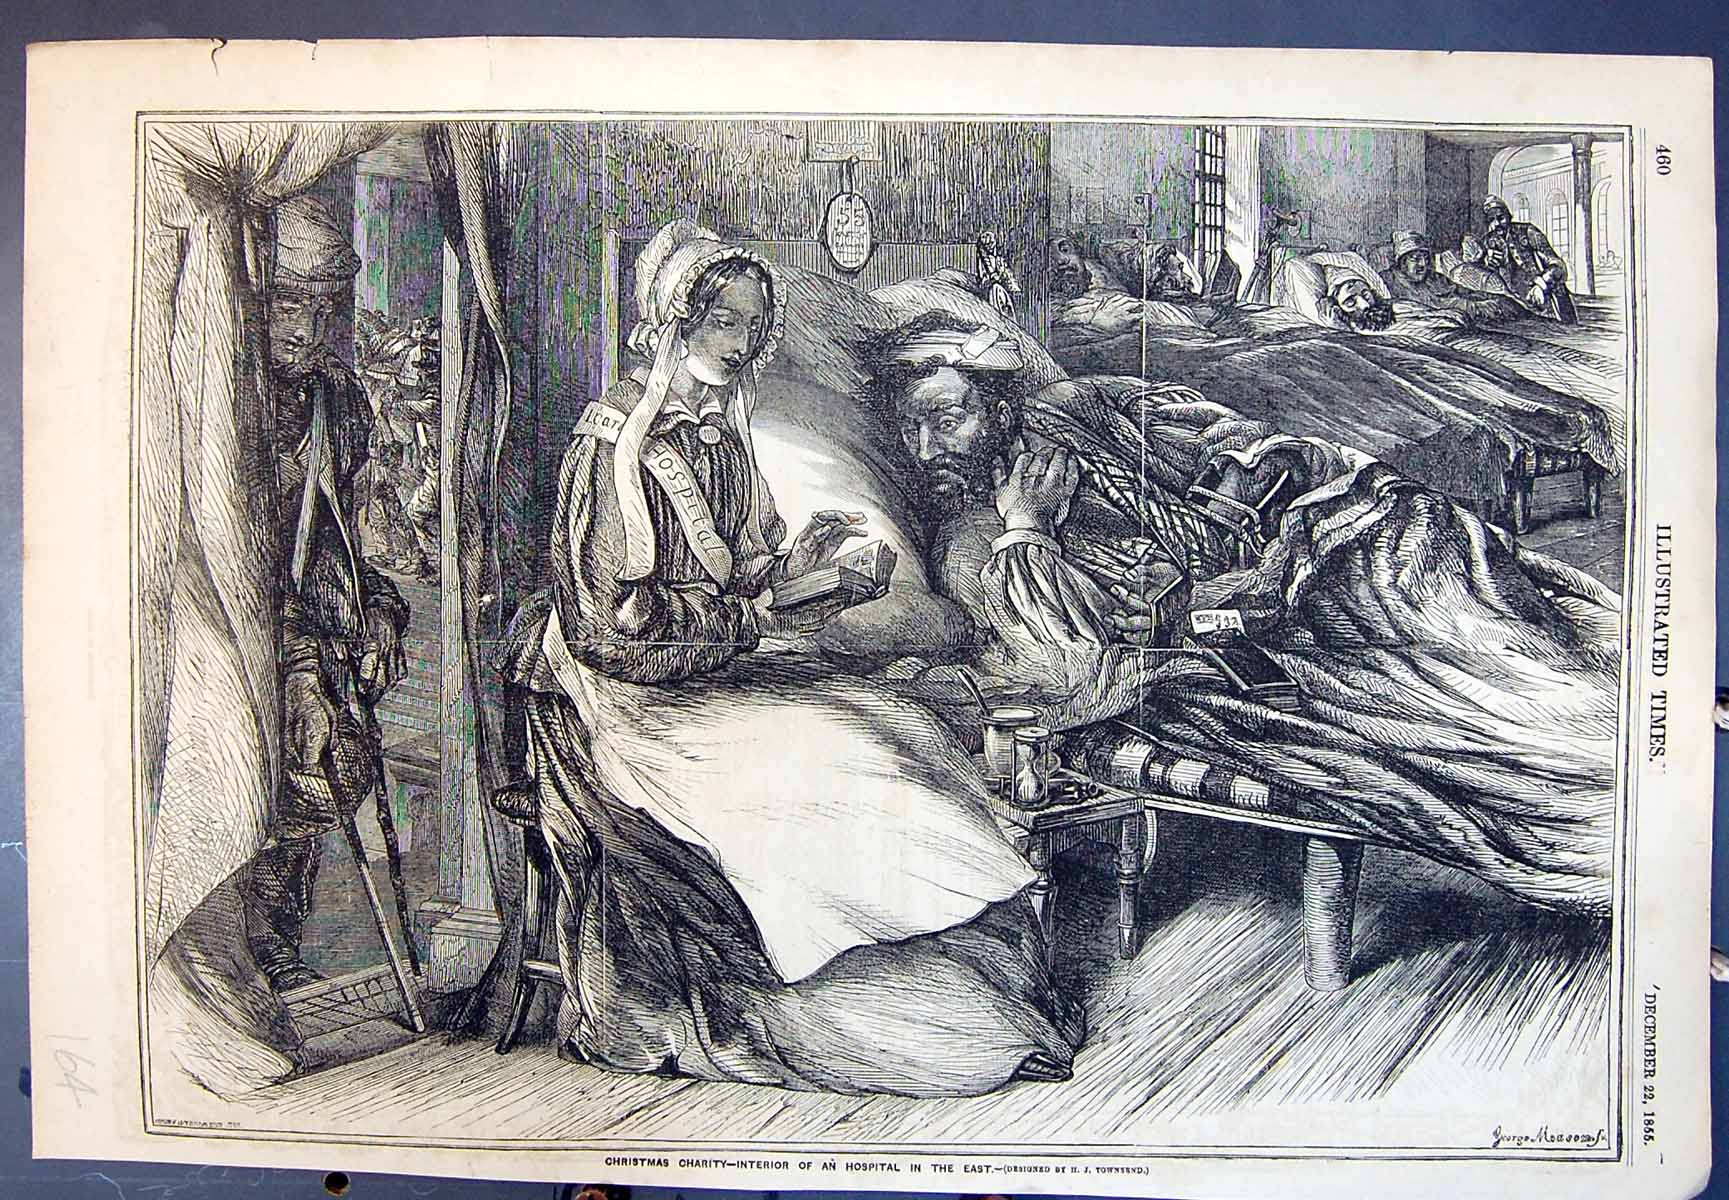 [Print Christmas Charity Interior A Hospital In The East 1855 164J616 Old Original]